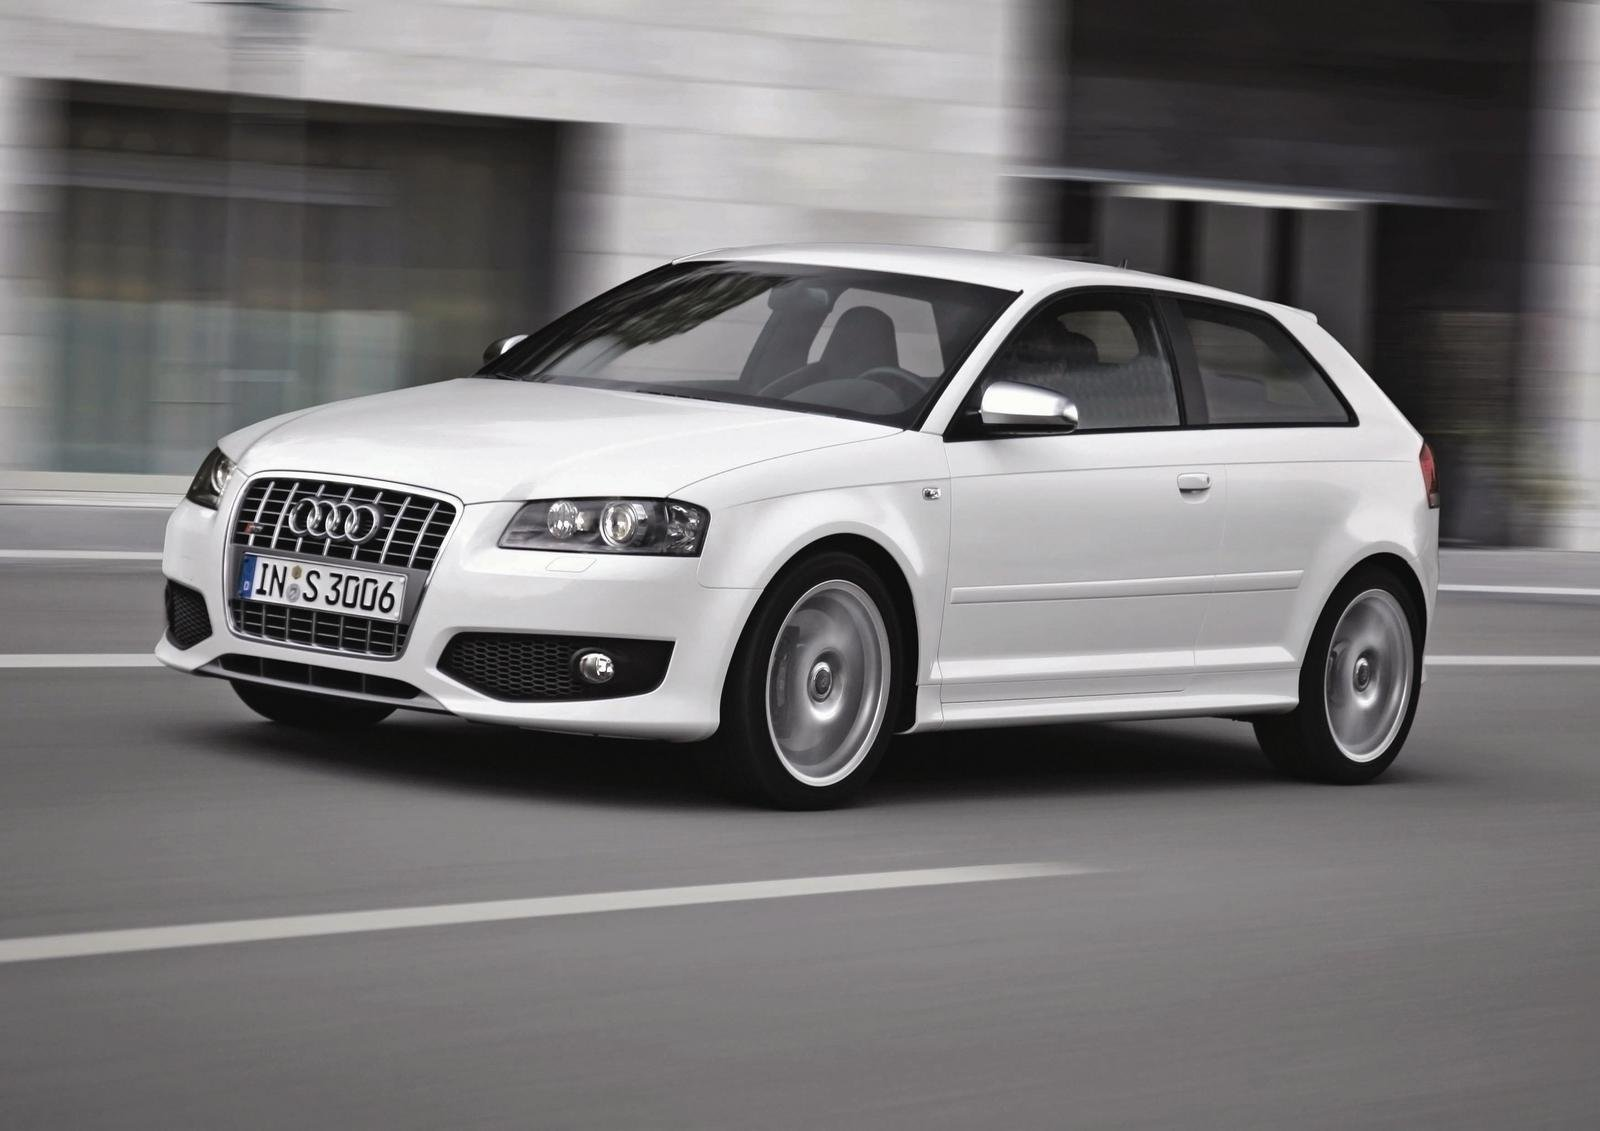 2007 audi s3 picture 95976 car review top speed. Black Bedroom Furniture Sets. Home Design Ideas